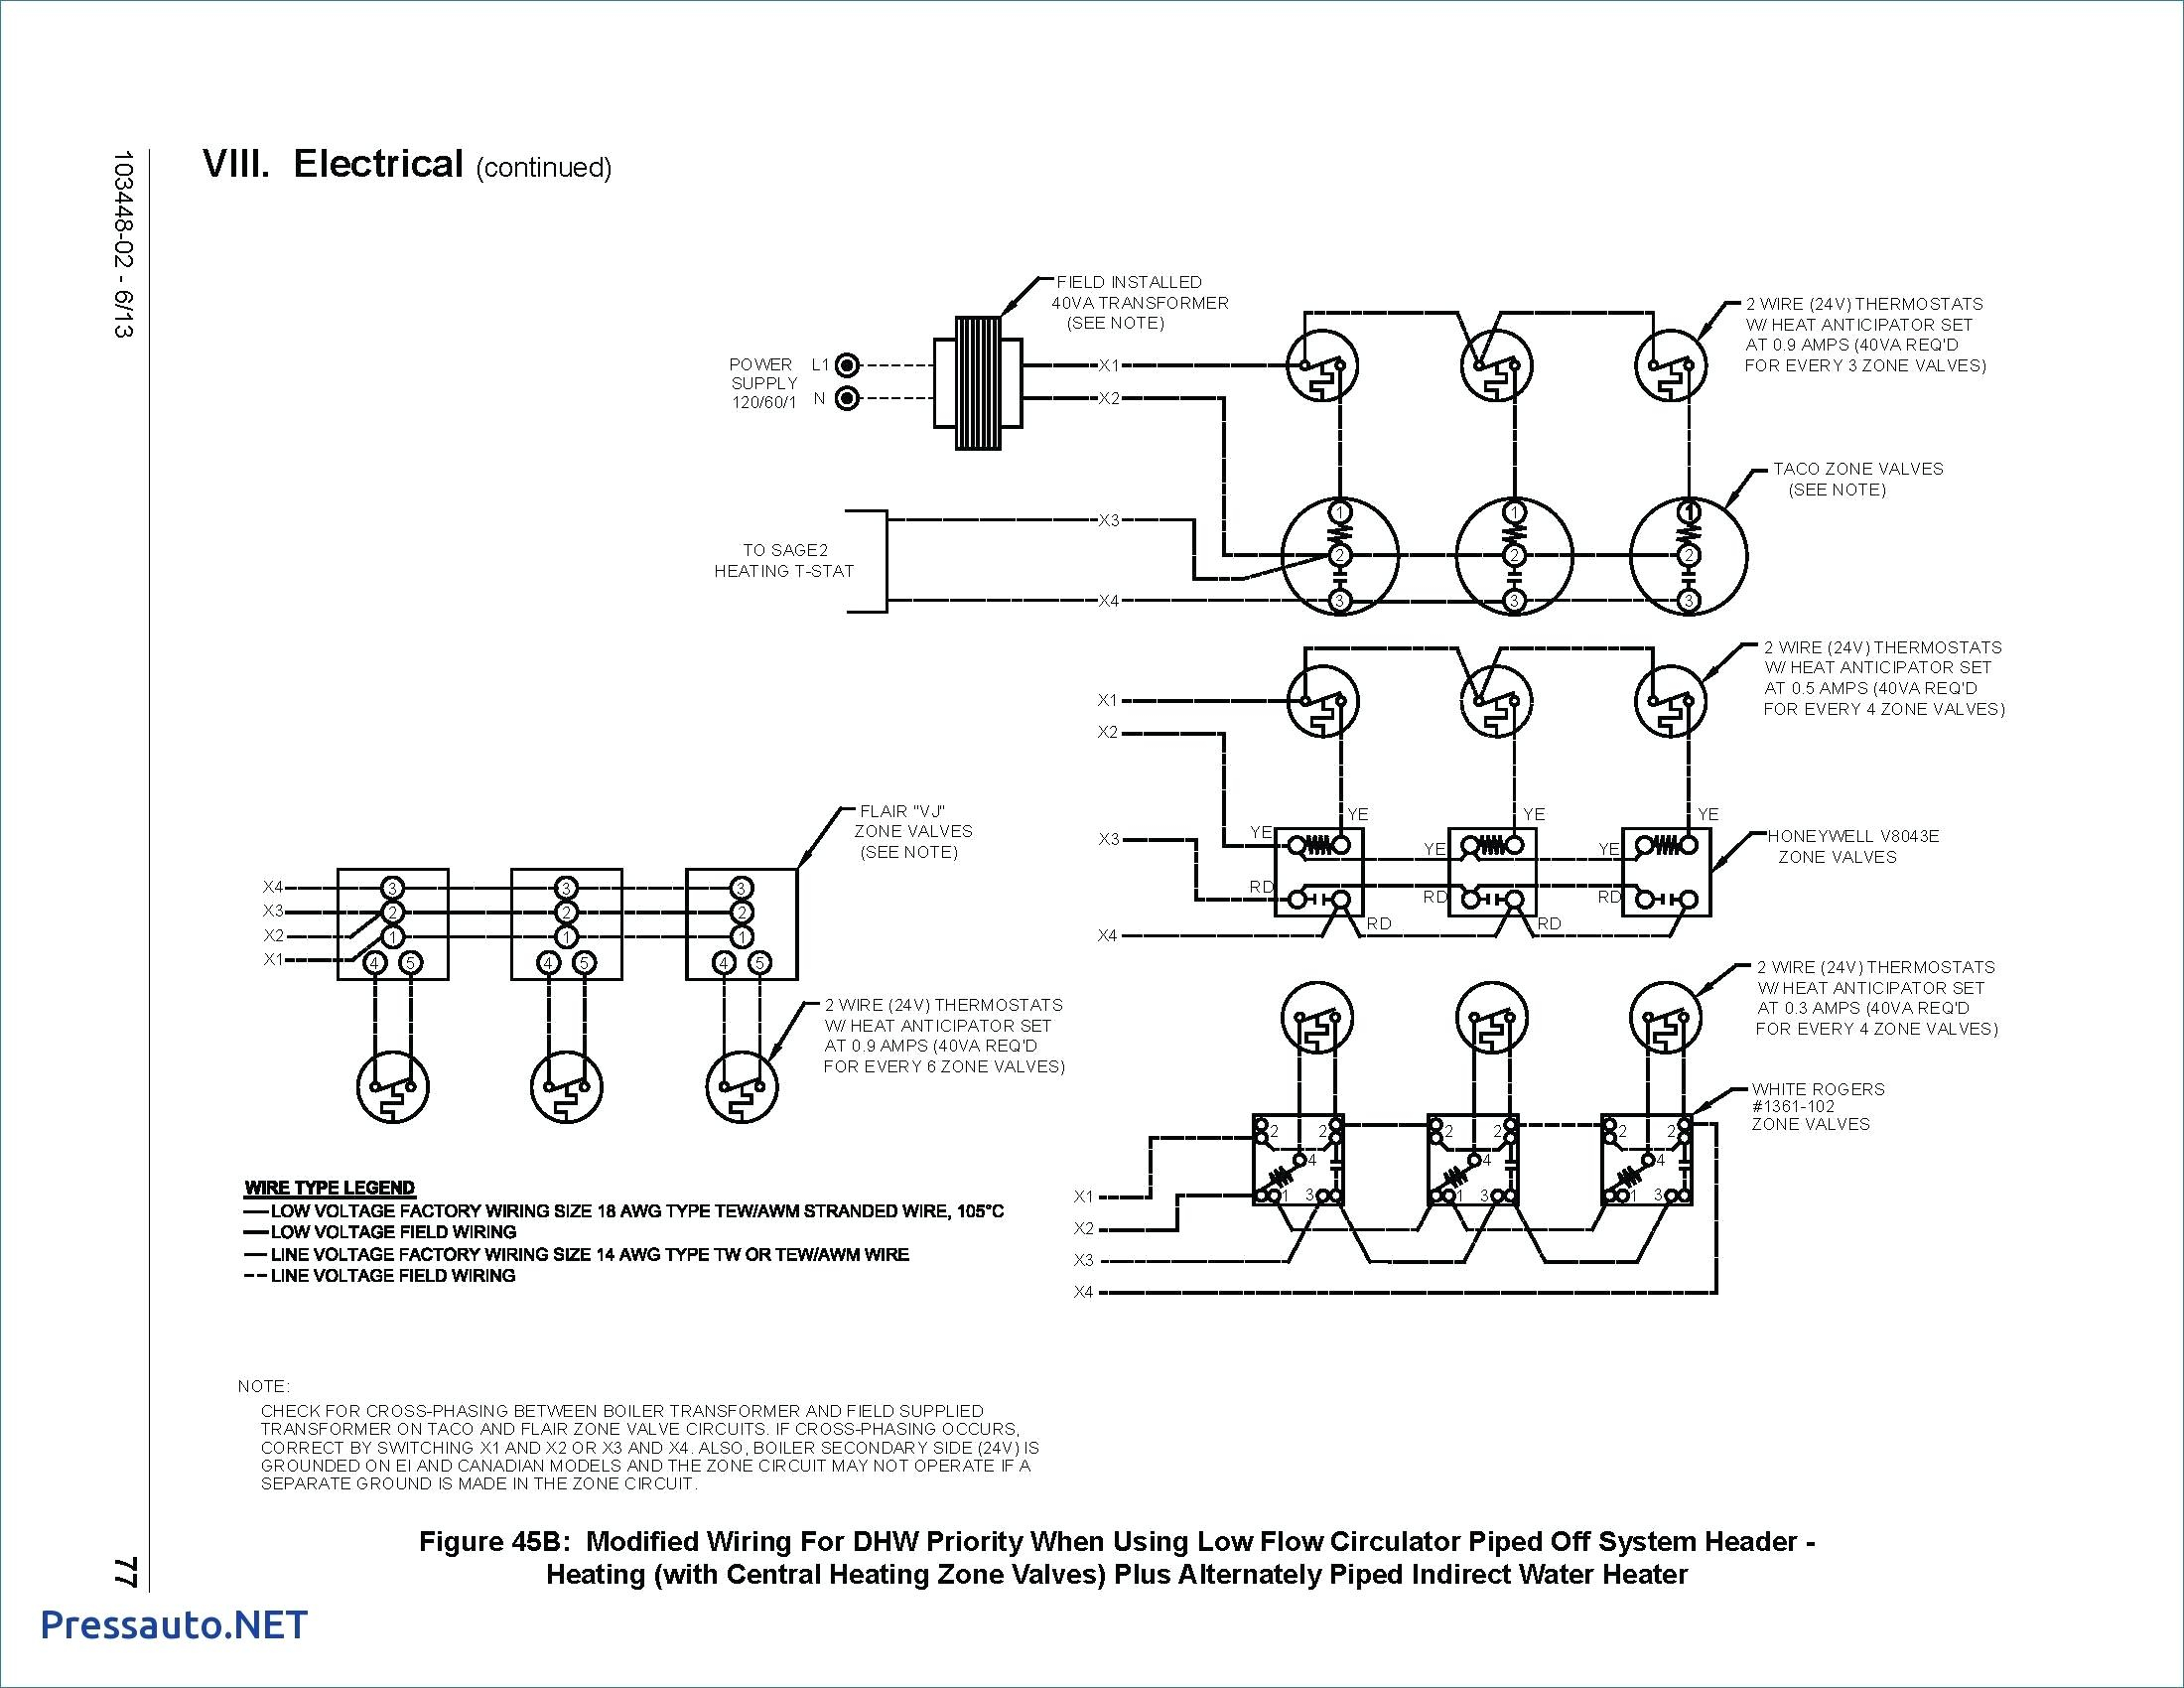 taco circulator pump wiring diagram Download-Taco Circulator Pump Wiring Diagram Lovely 24v Transformer Wiring Diagram 240v Standalone to Power Many 9-f